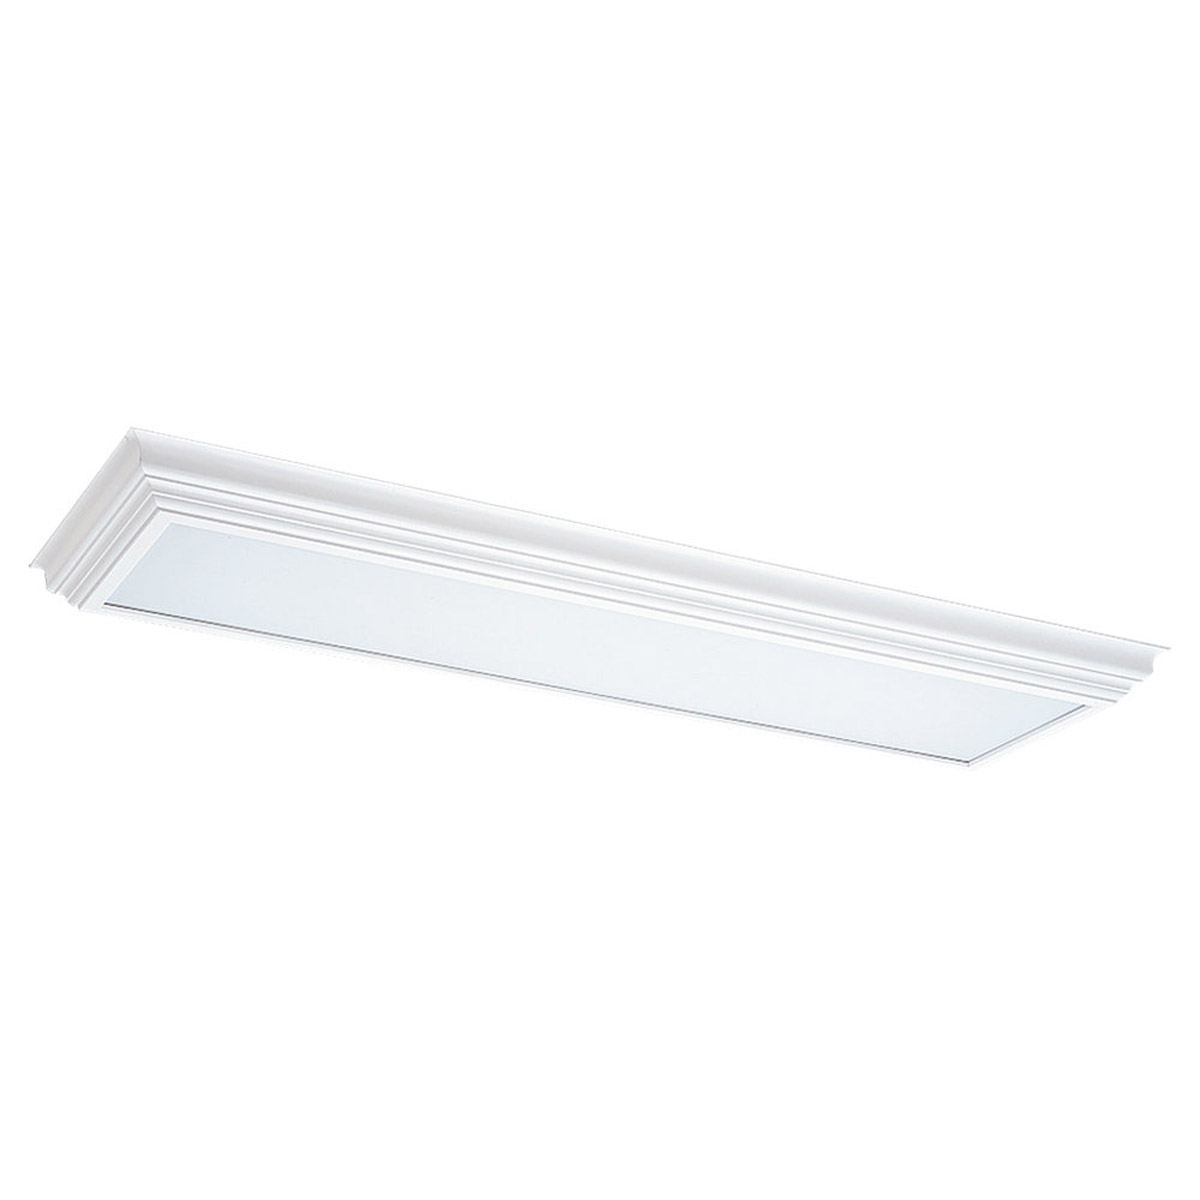 Sea Gull Lighting Signature Fluorescent Trim Only in White 5978-15 photo